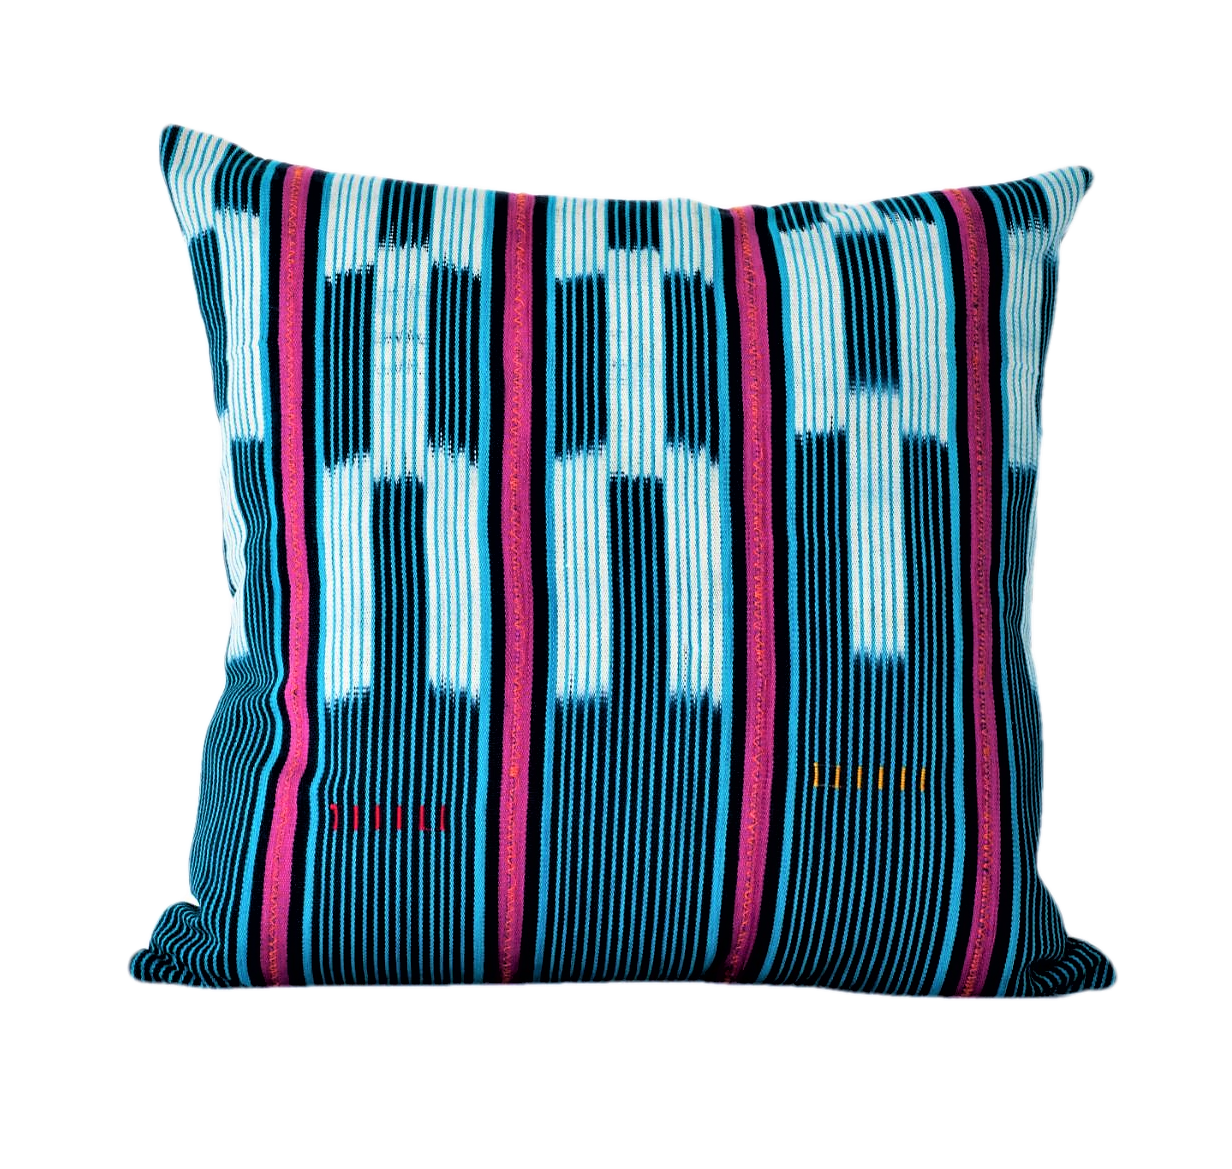 Ethical hand dyed, hand woven artisan crafted turquoise blue and pink baoule cushion made by former refugees building new lives in New Zealand